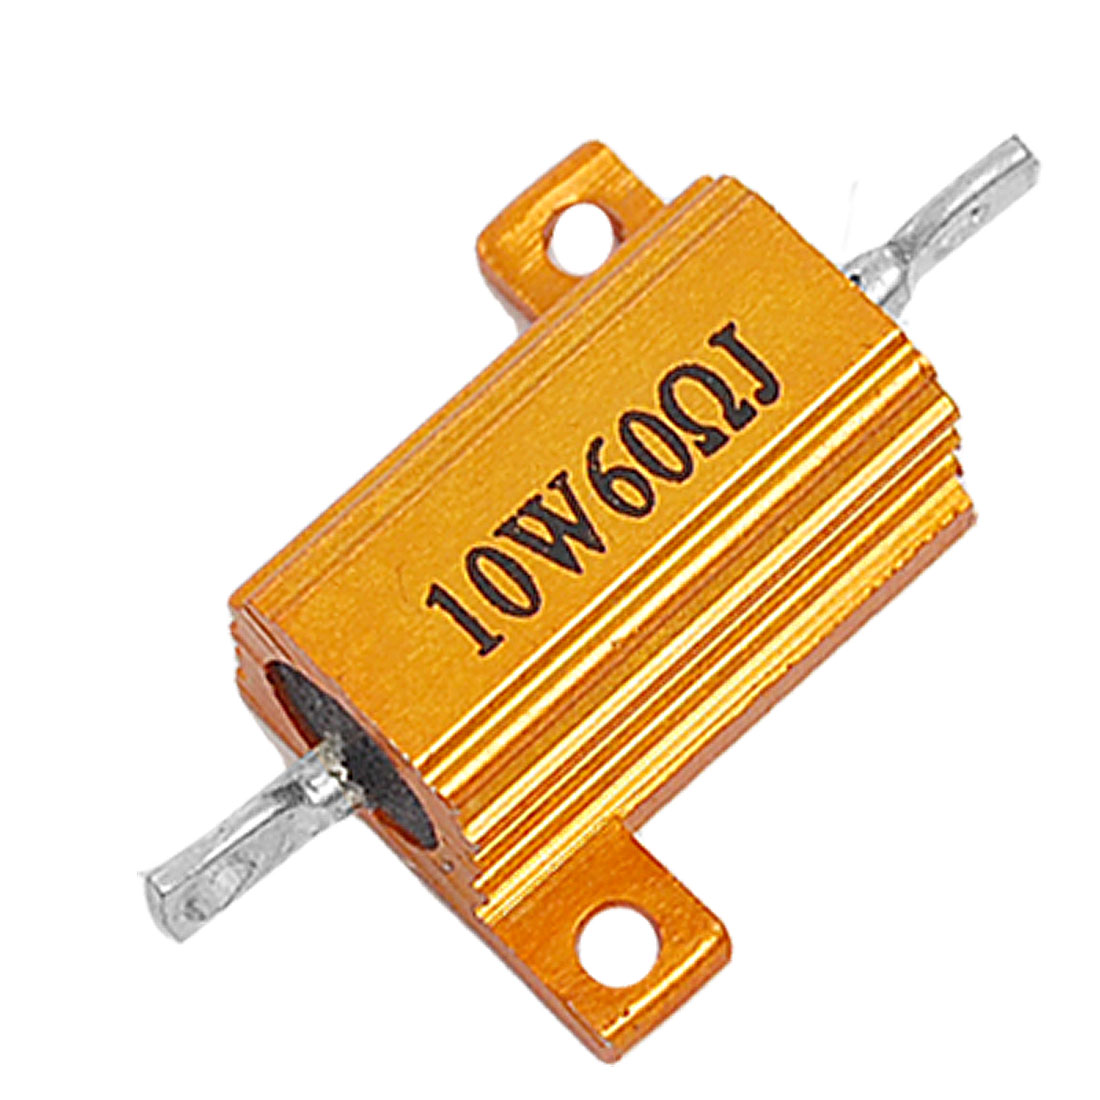 10W 5% 60 Ohm Resistance Value Screw Tabs Aluminum Case Resistor